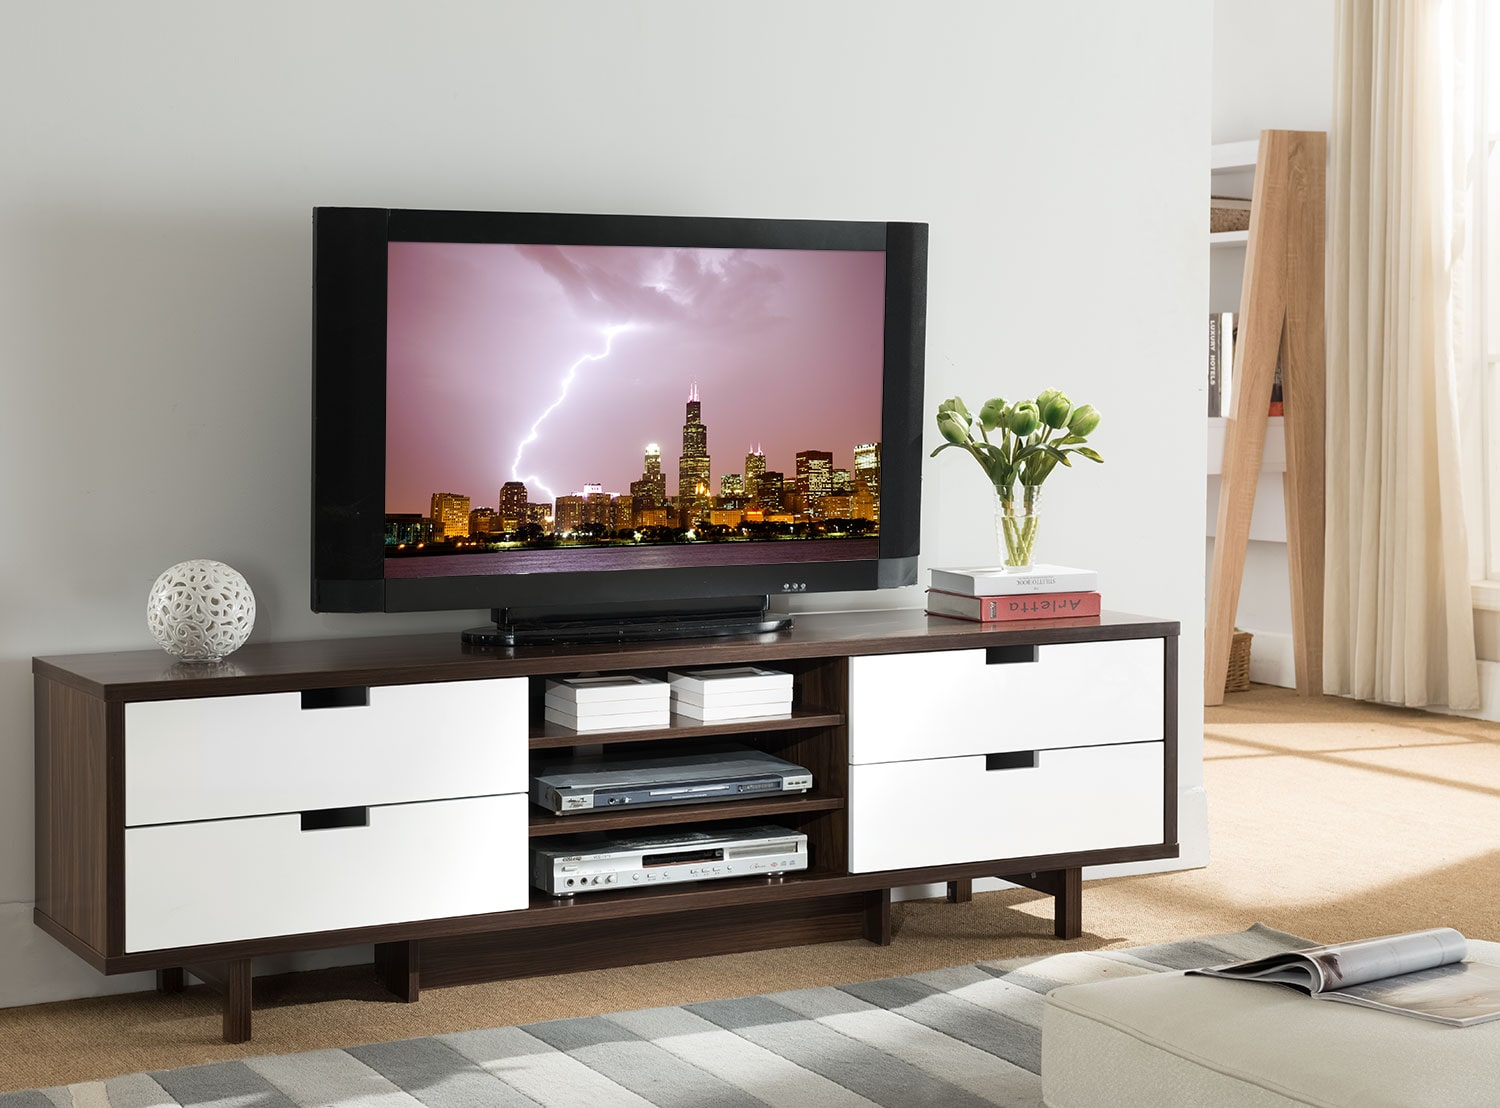 lovran 71 tv stand the brick